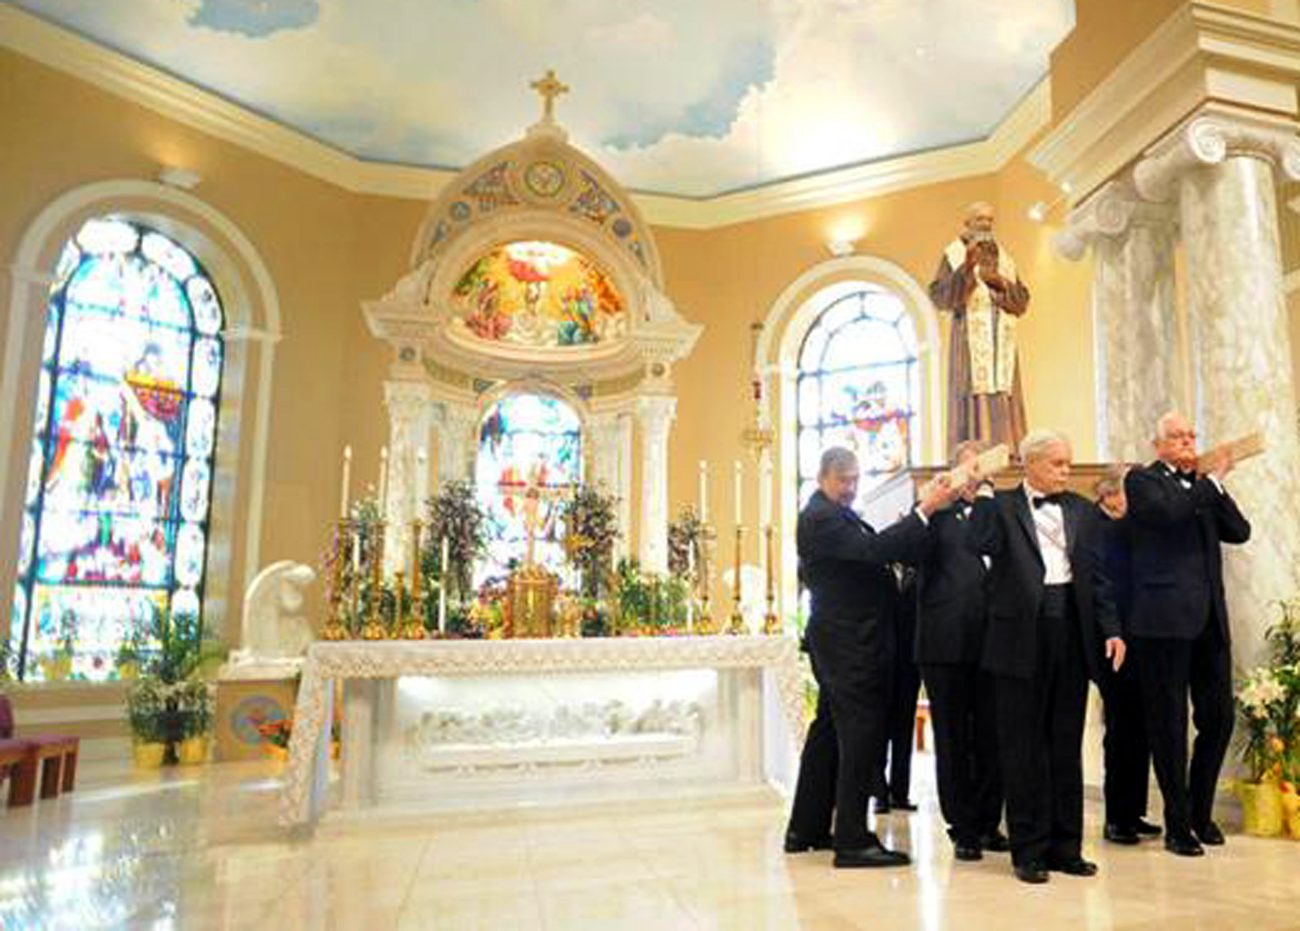 Men of St. Bede Parish, Holland, carry a statue of St. Pio of Pietrelcina in the church.